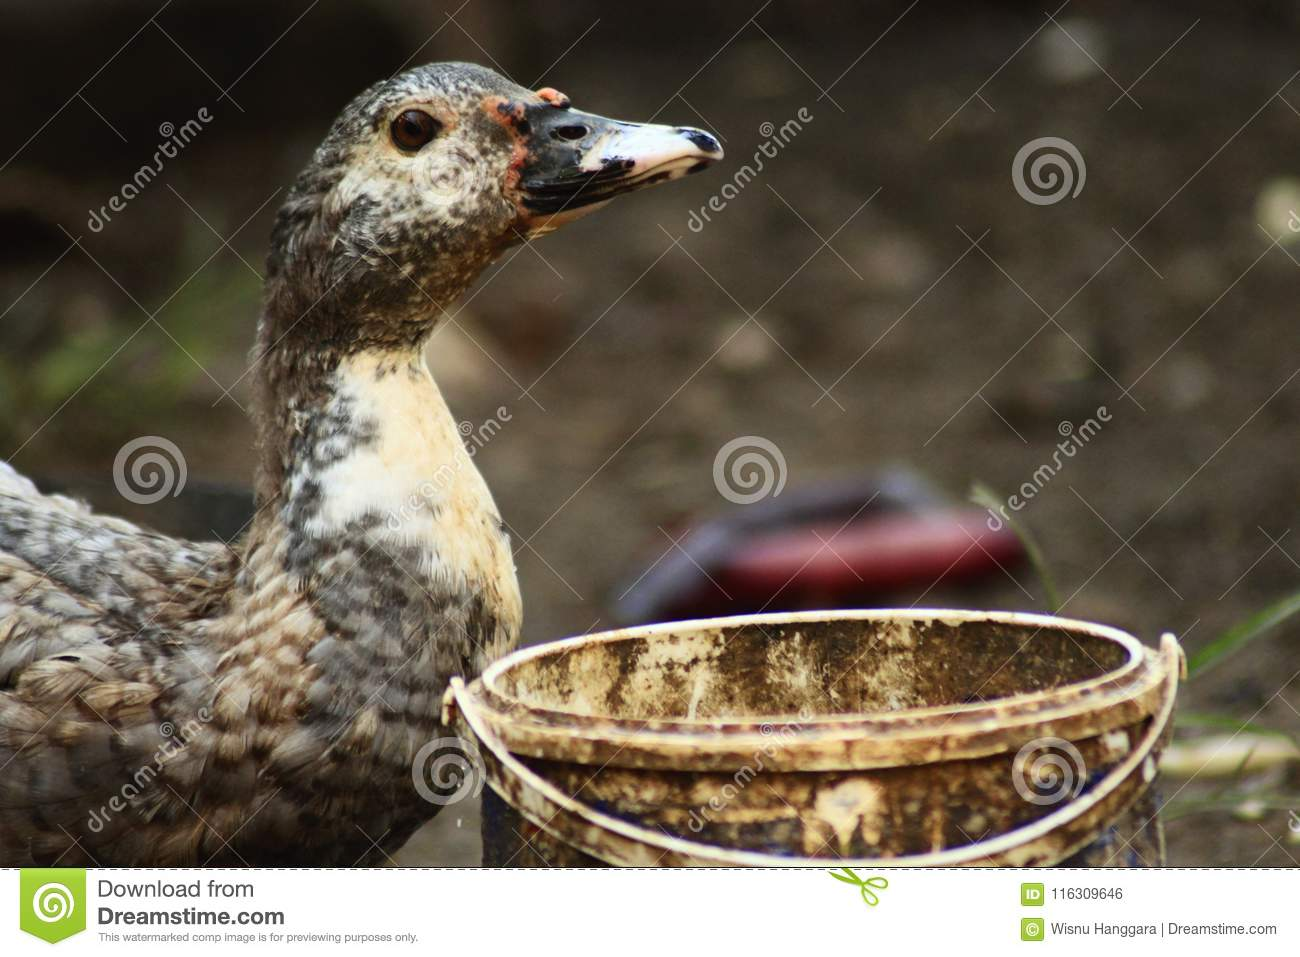 duck thirst and drink stock photo image of duckduckgo 116309646